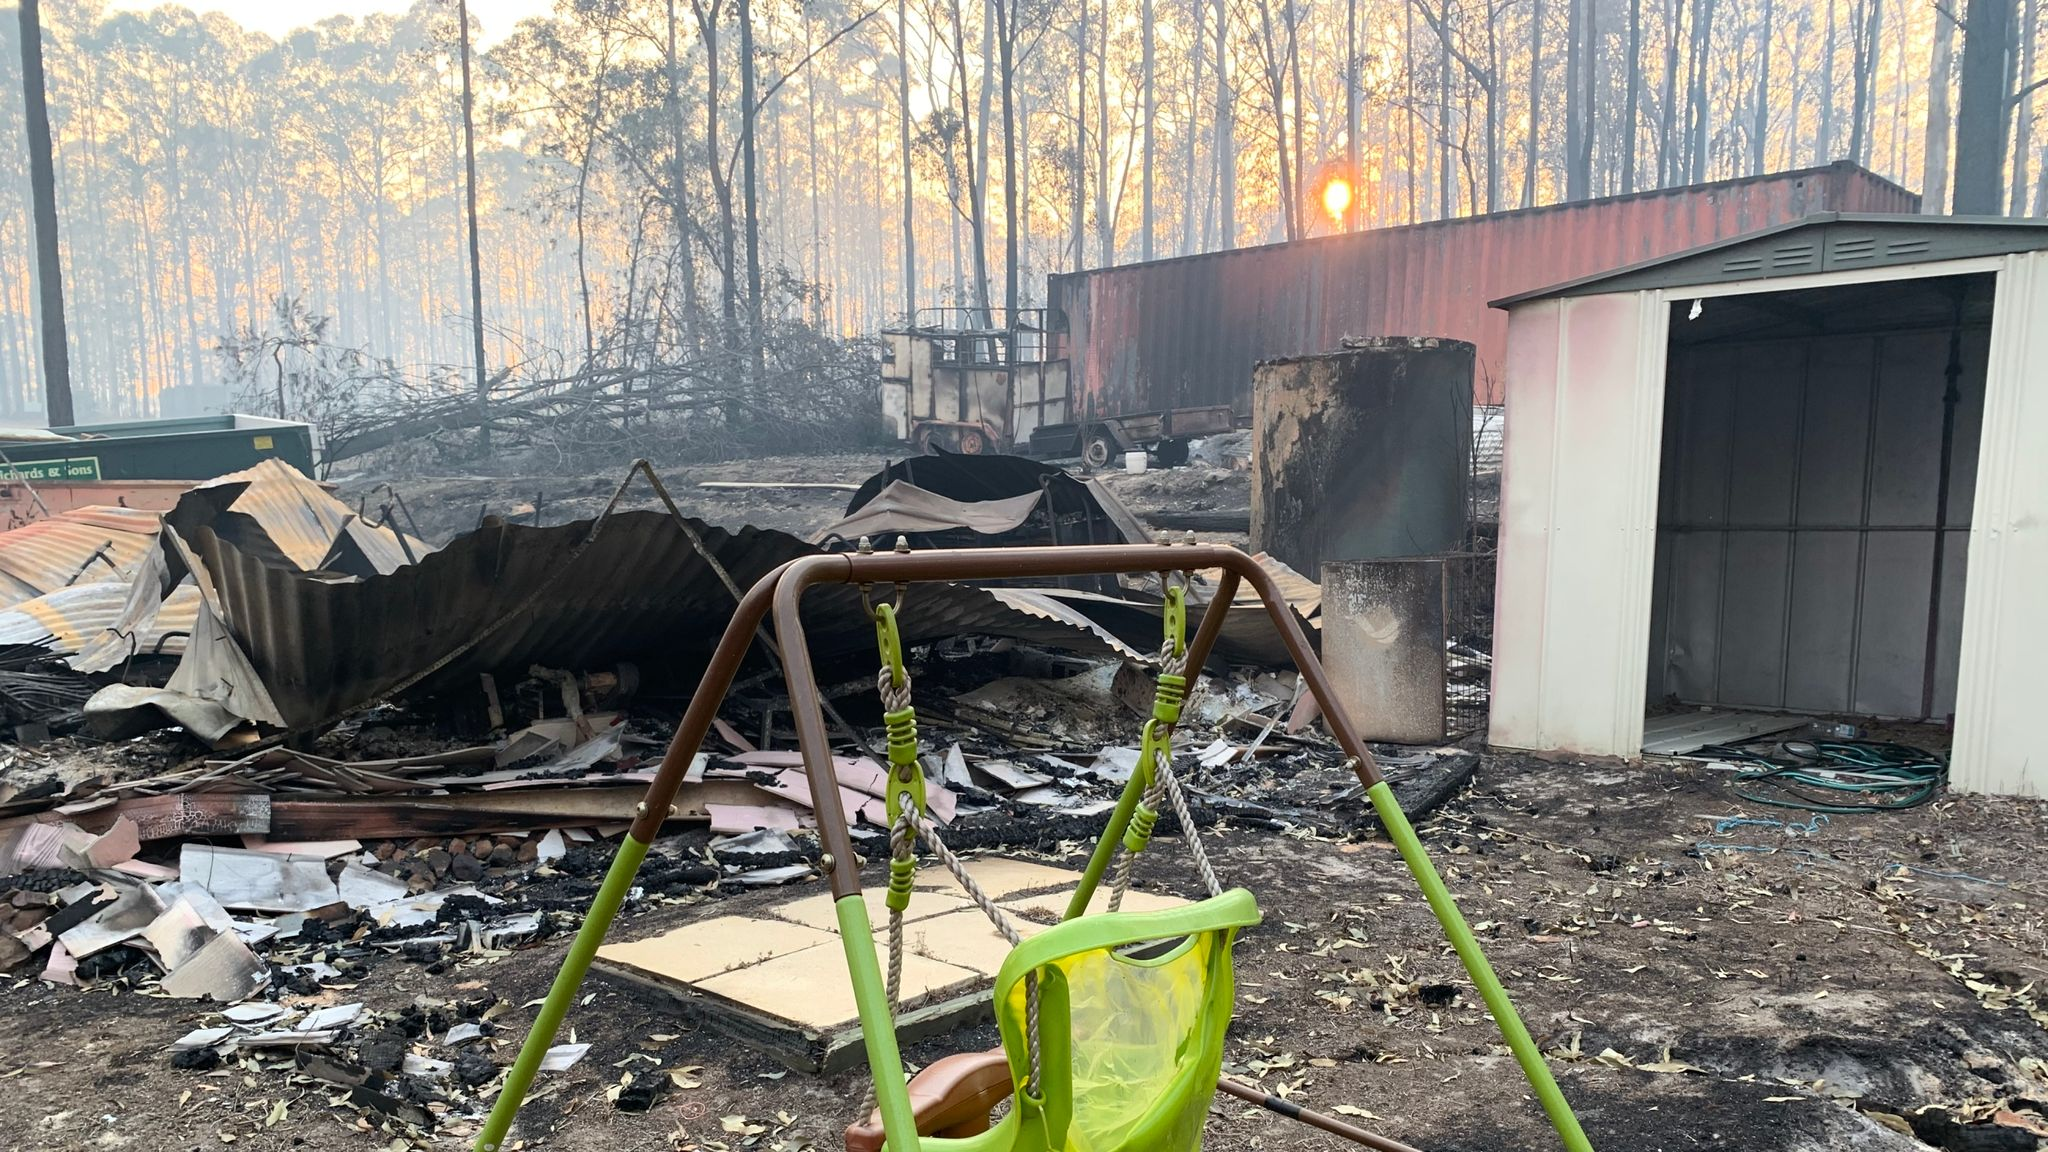 Australia bush fires: Overwhelming sense of loss as people count cost disaster